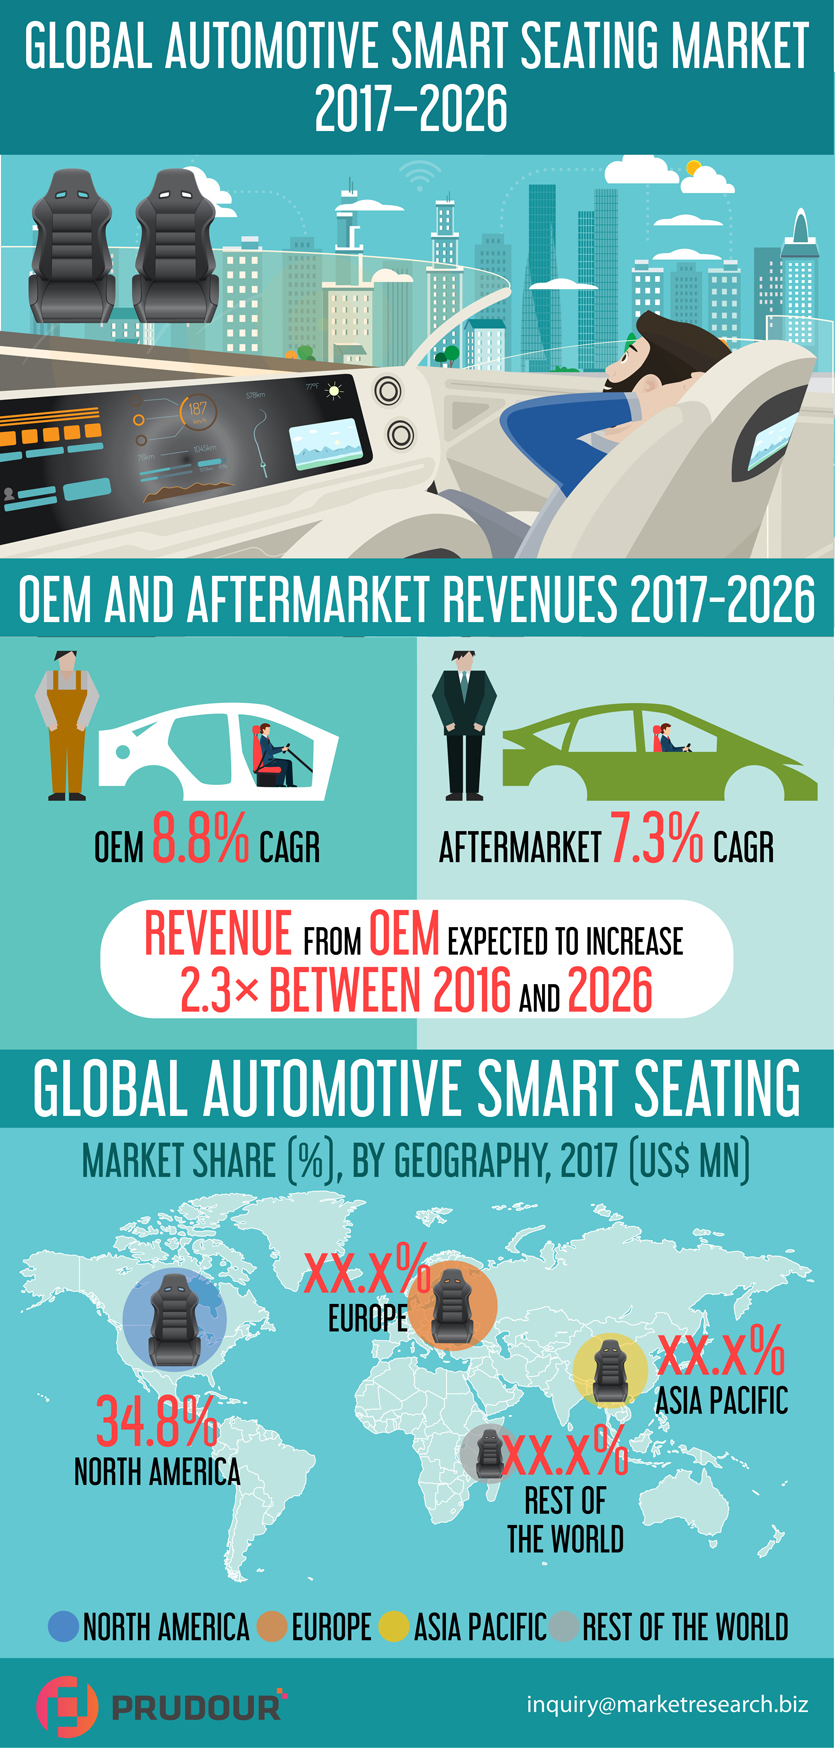 Worldwide Automotive Smart Seating Systems Market about to hit CAGR of 8.4% from 2017 to 2026